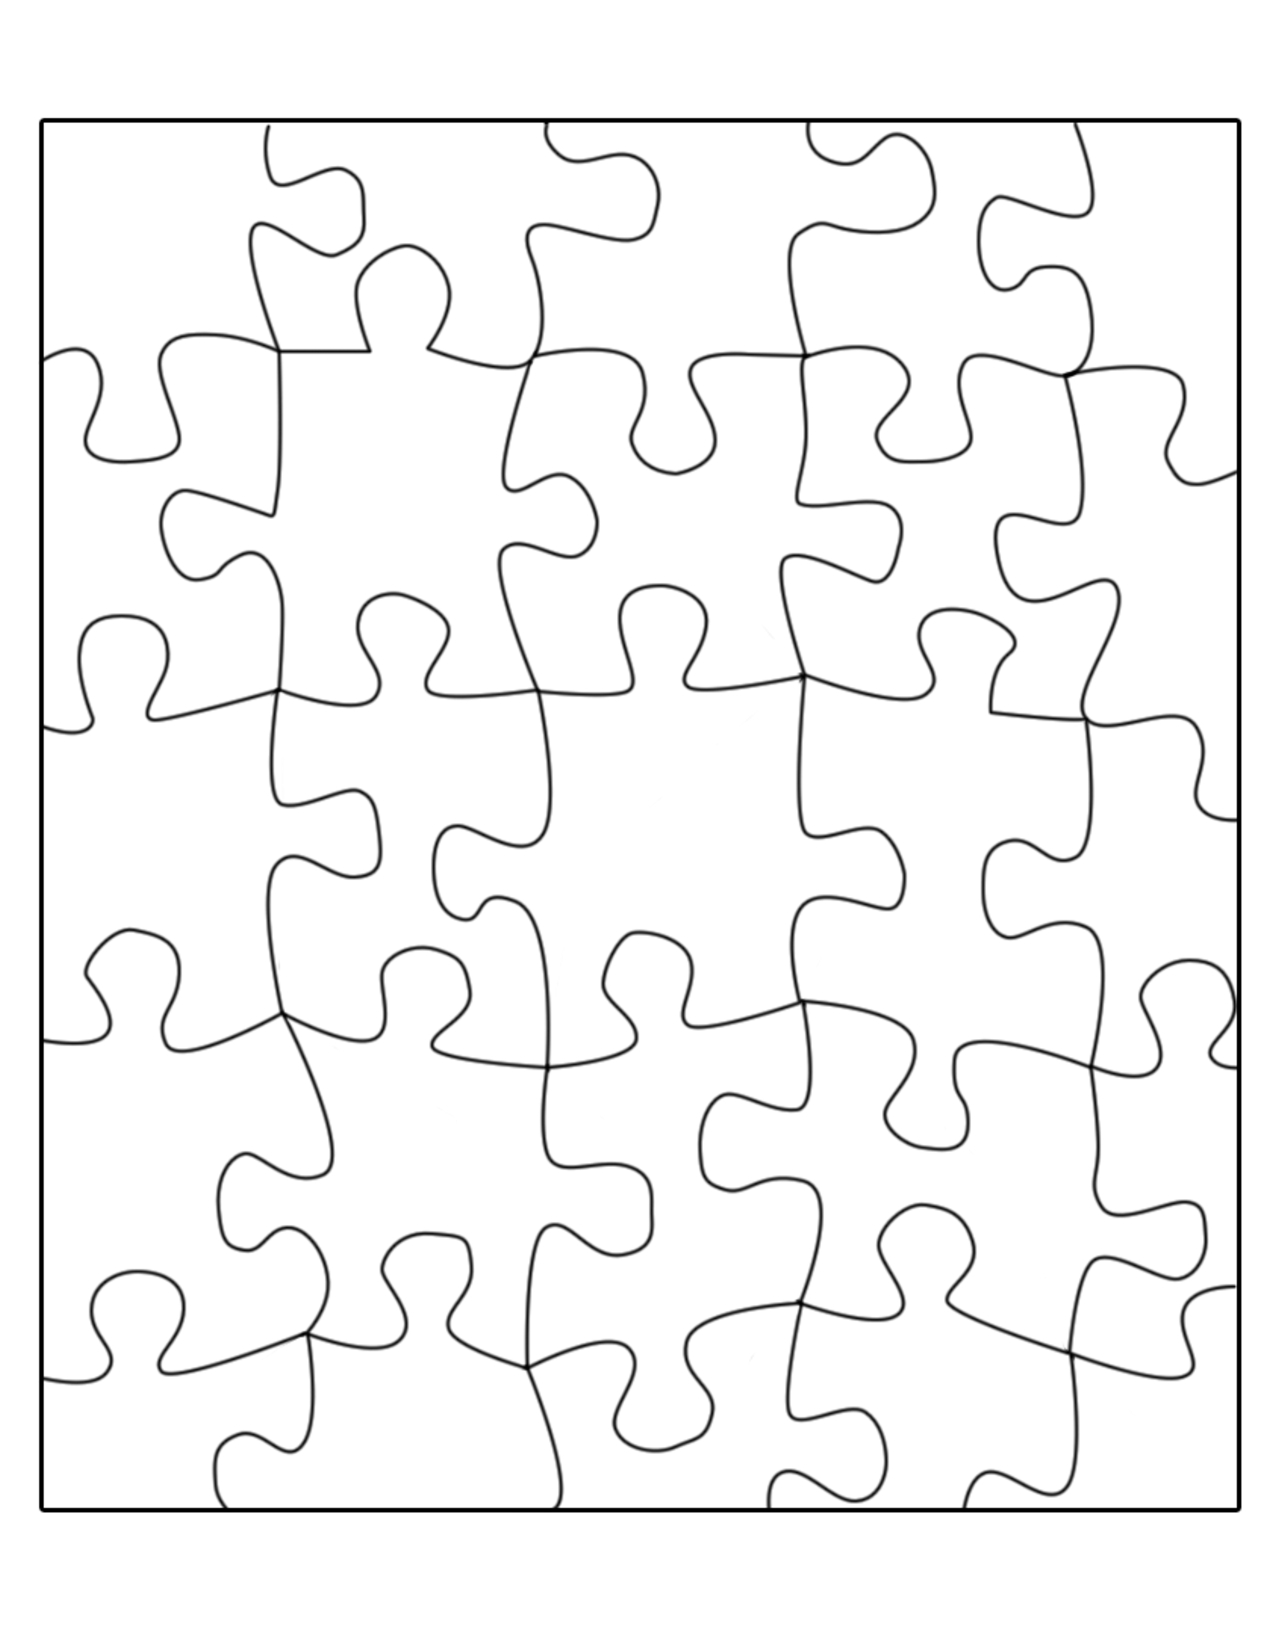 Free Puzzle Template, Download Free Clip Art, Free Clip Art On - Printable Heart Puzzle Template